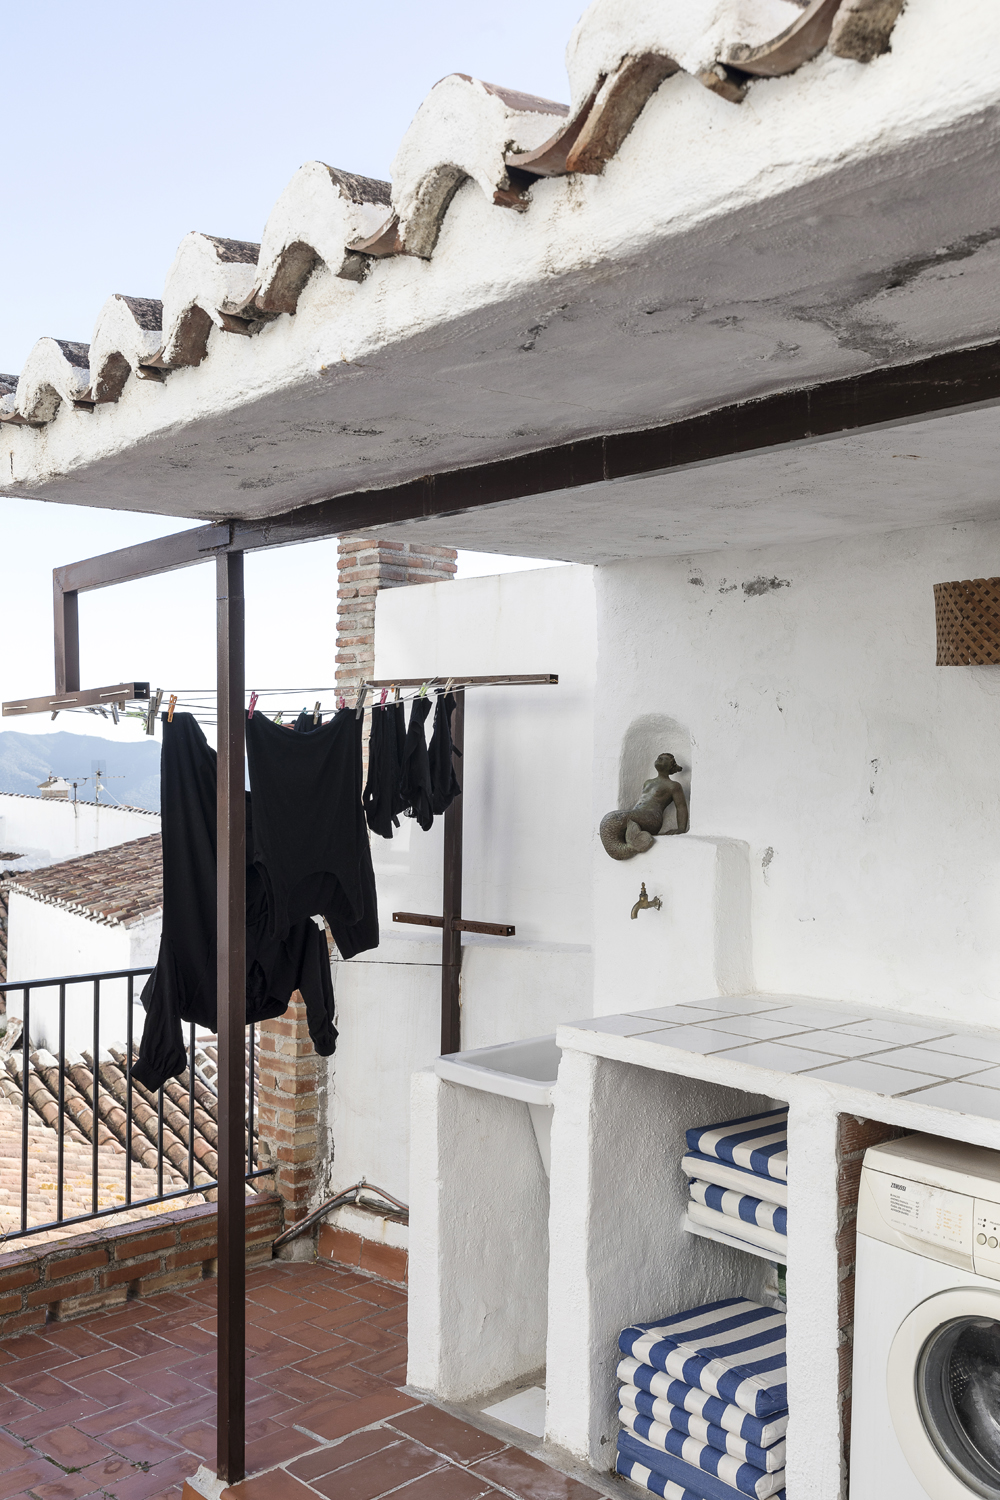 Canillas de Aceituno, Spain, holiday, rent, apartment, townhouse, rental, vacationhome, home, interior, spanish, style, interiorphotography, interior design, photographer, Frida Steiner, Visualaddict, visualaddictfrida, laundry, rooftop, terrace